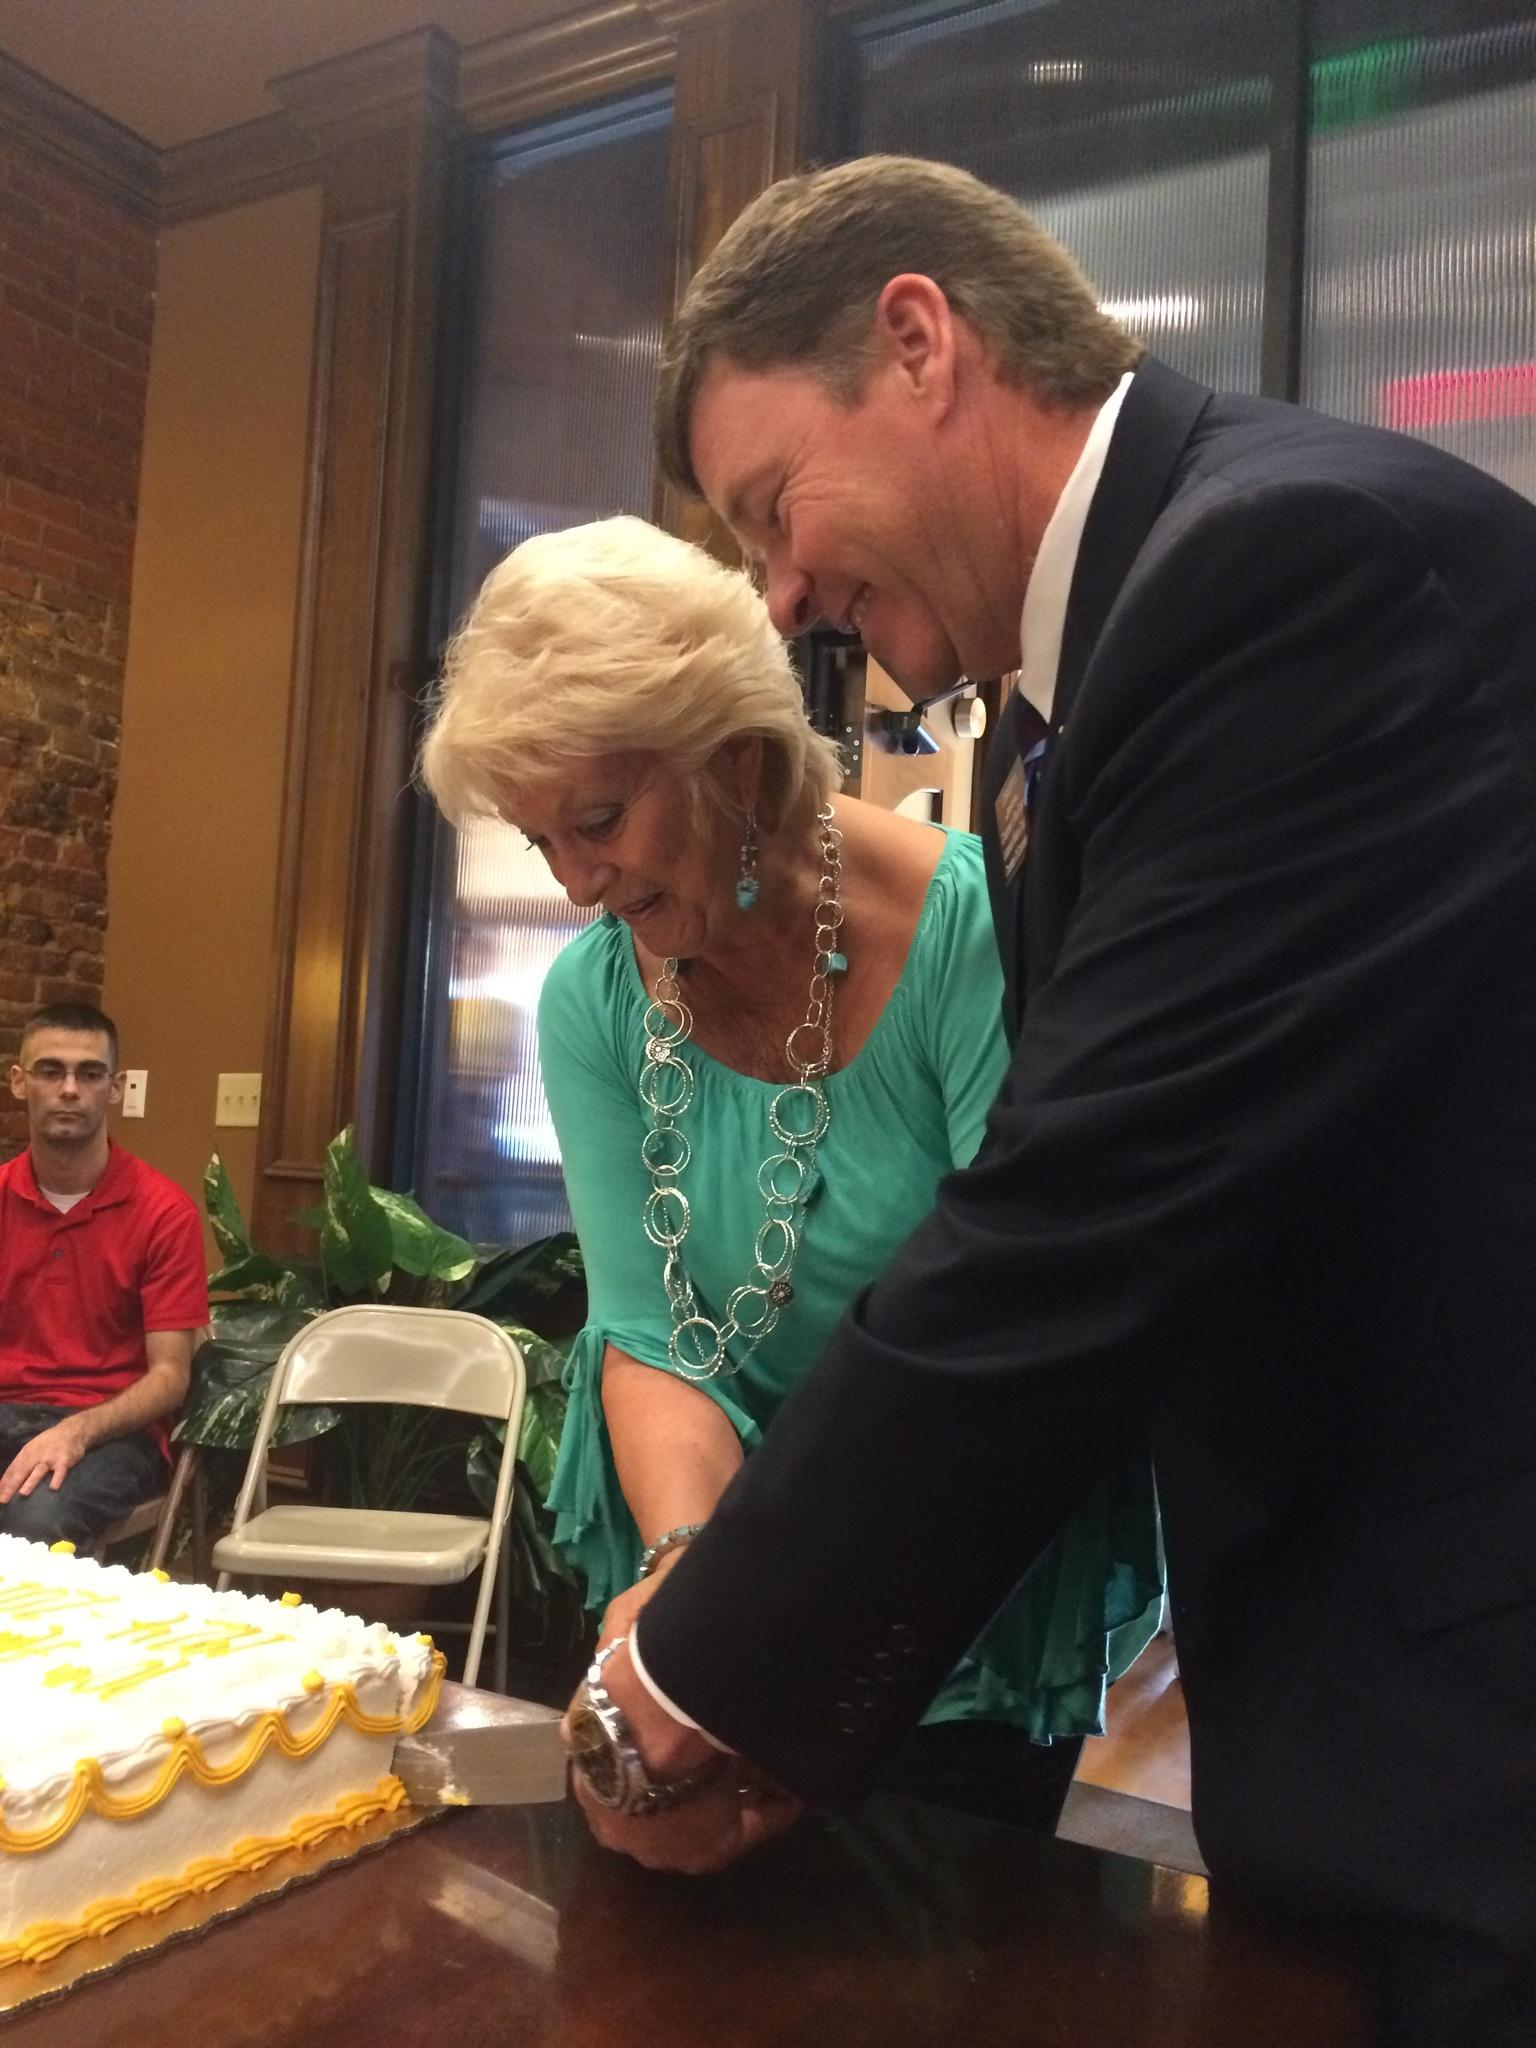 90th-anniversary-cake-cutting-lebanon-wilson-county-chamber-of-commerce